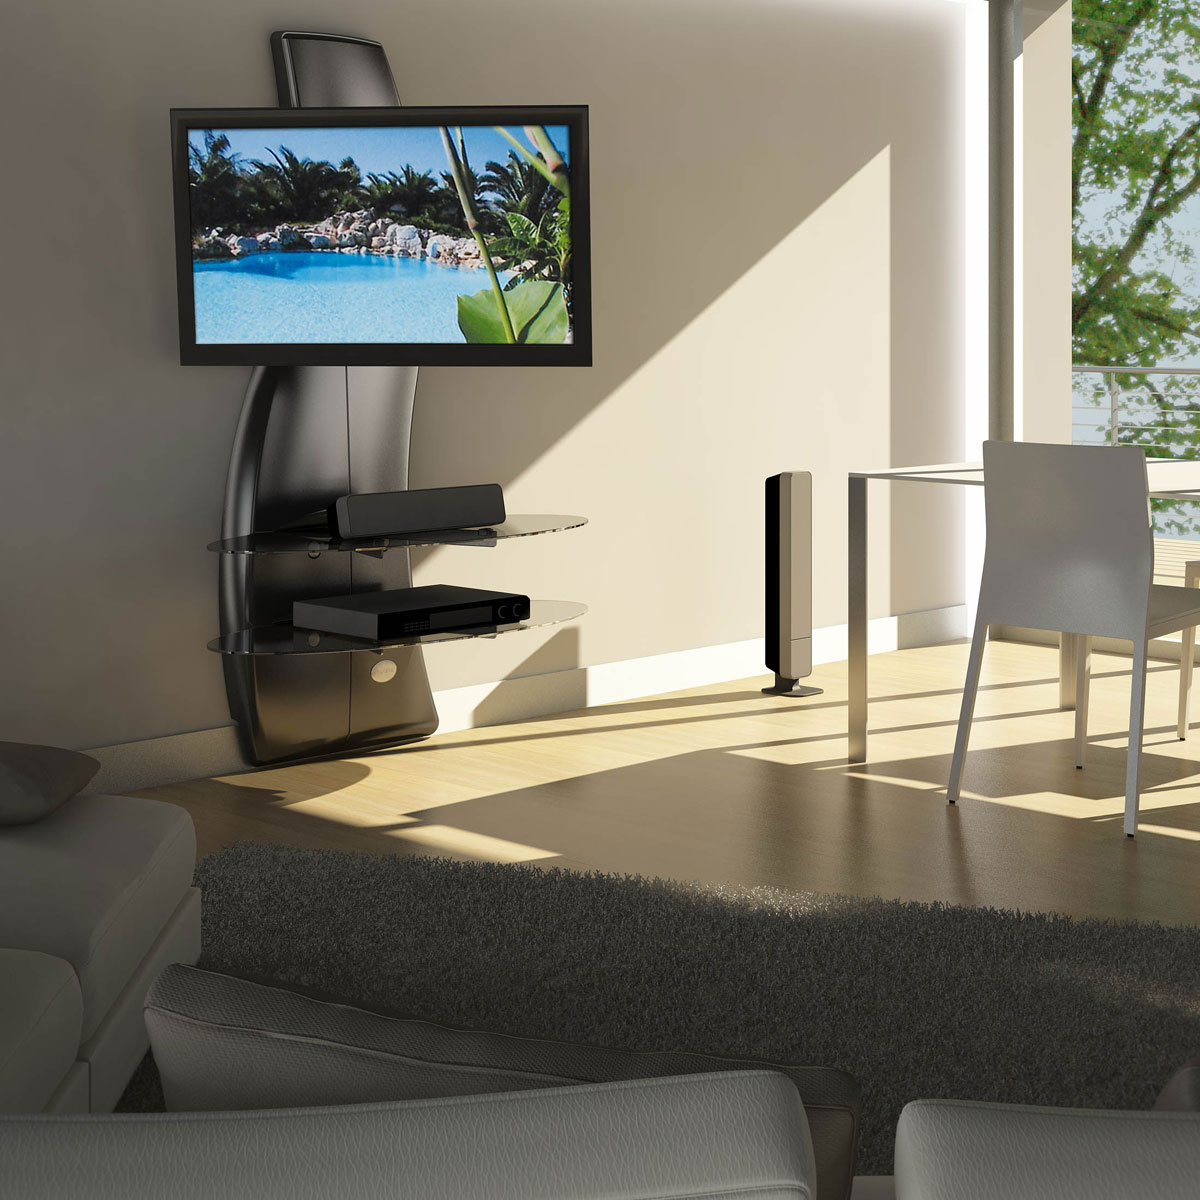 meliconi ghost design 2000 rotation blanc meuble tv meliconi sur ldlc. Black Bedroom Furniture Sets. Home Design Ideas